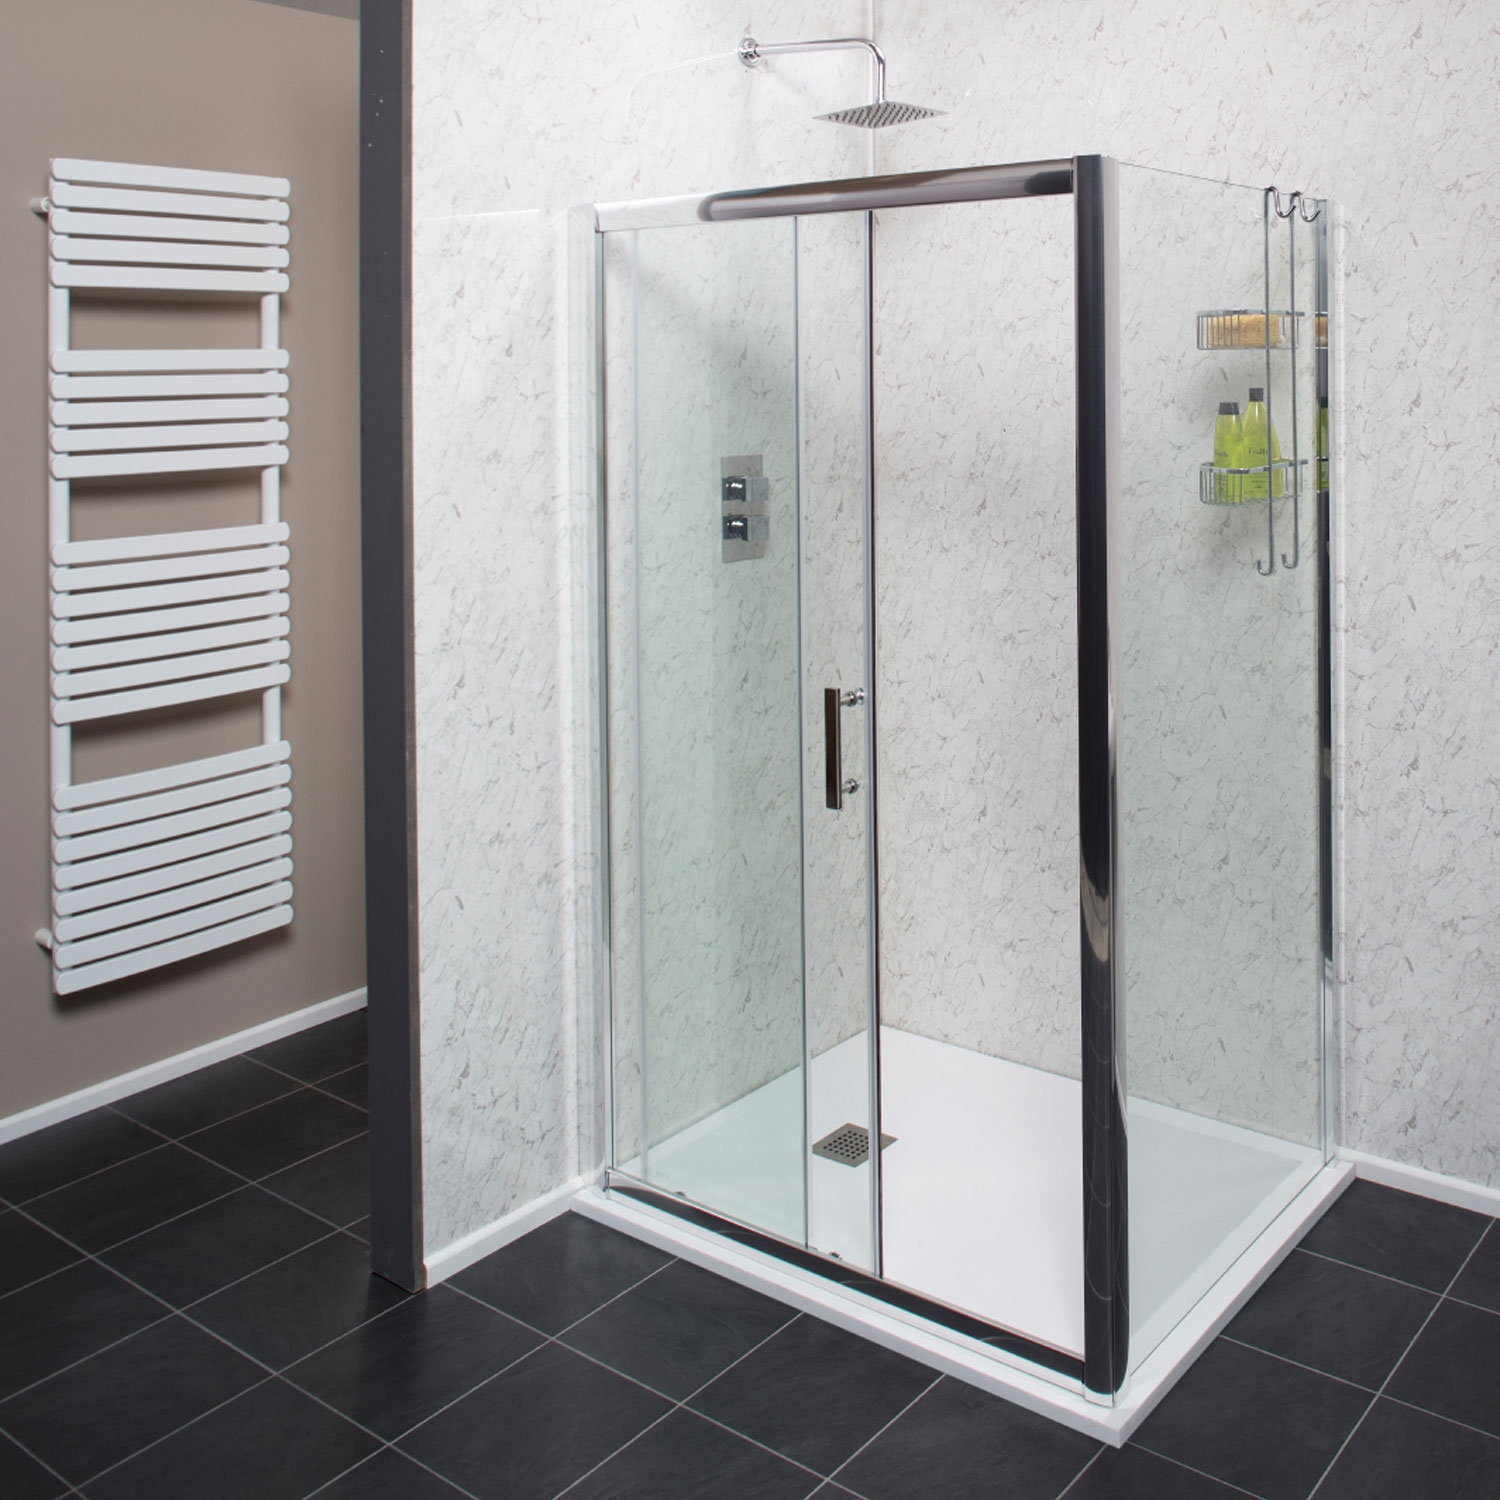 Cali Cass Six Sliding Shower Door 1000mm Wide - 6mm Glass-0